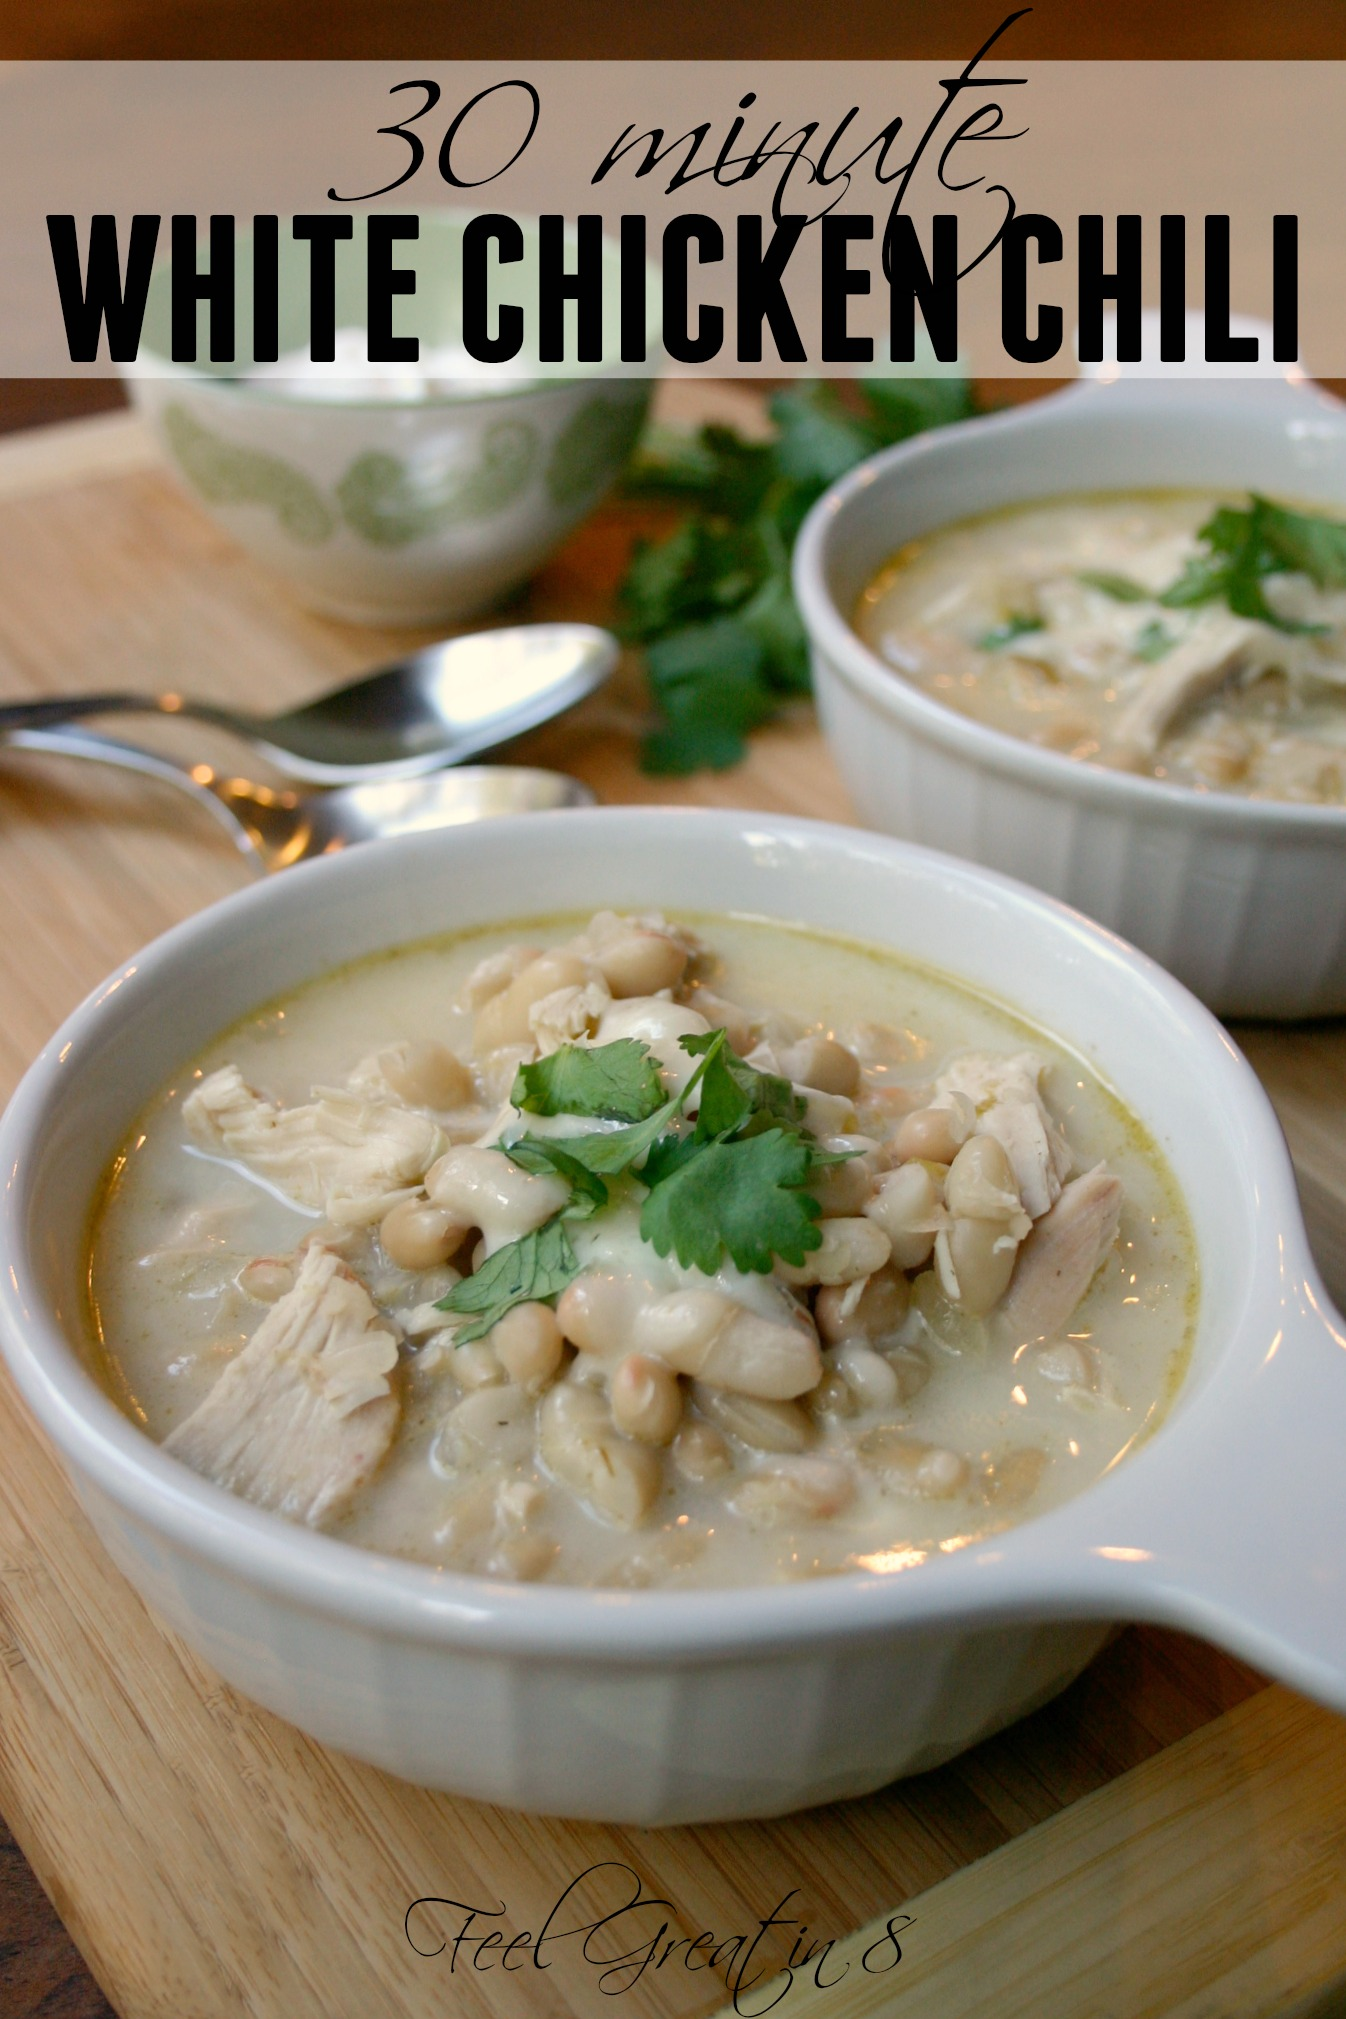 30 Minute White Chicken Chili - This delicious, hearty and healthy dinner can be on the table in less than 30 minutes! It's pure comfort food at it's best! | Feel Great in 8 #healthy #recipe #quick #chili #chicken